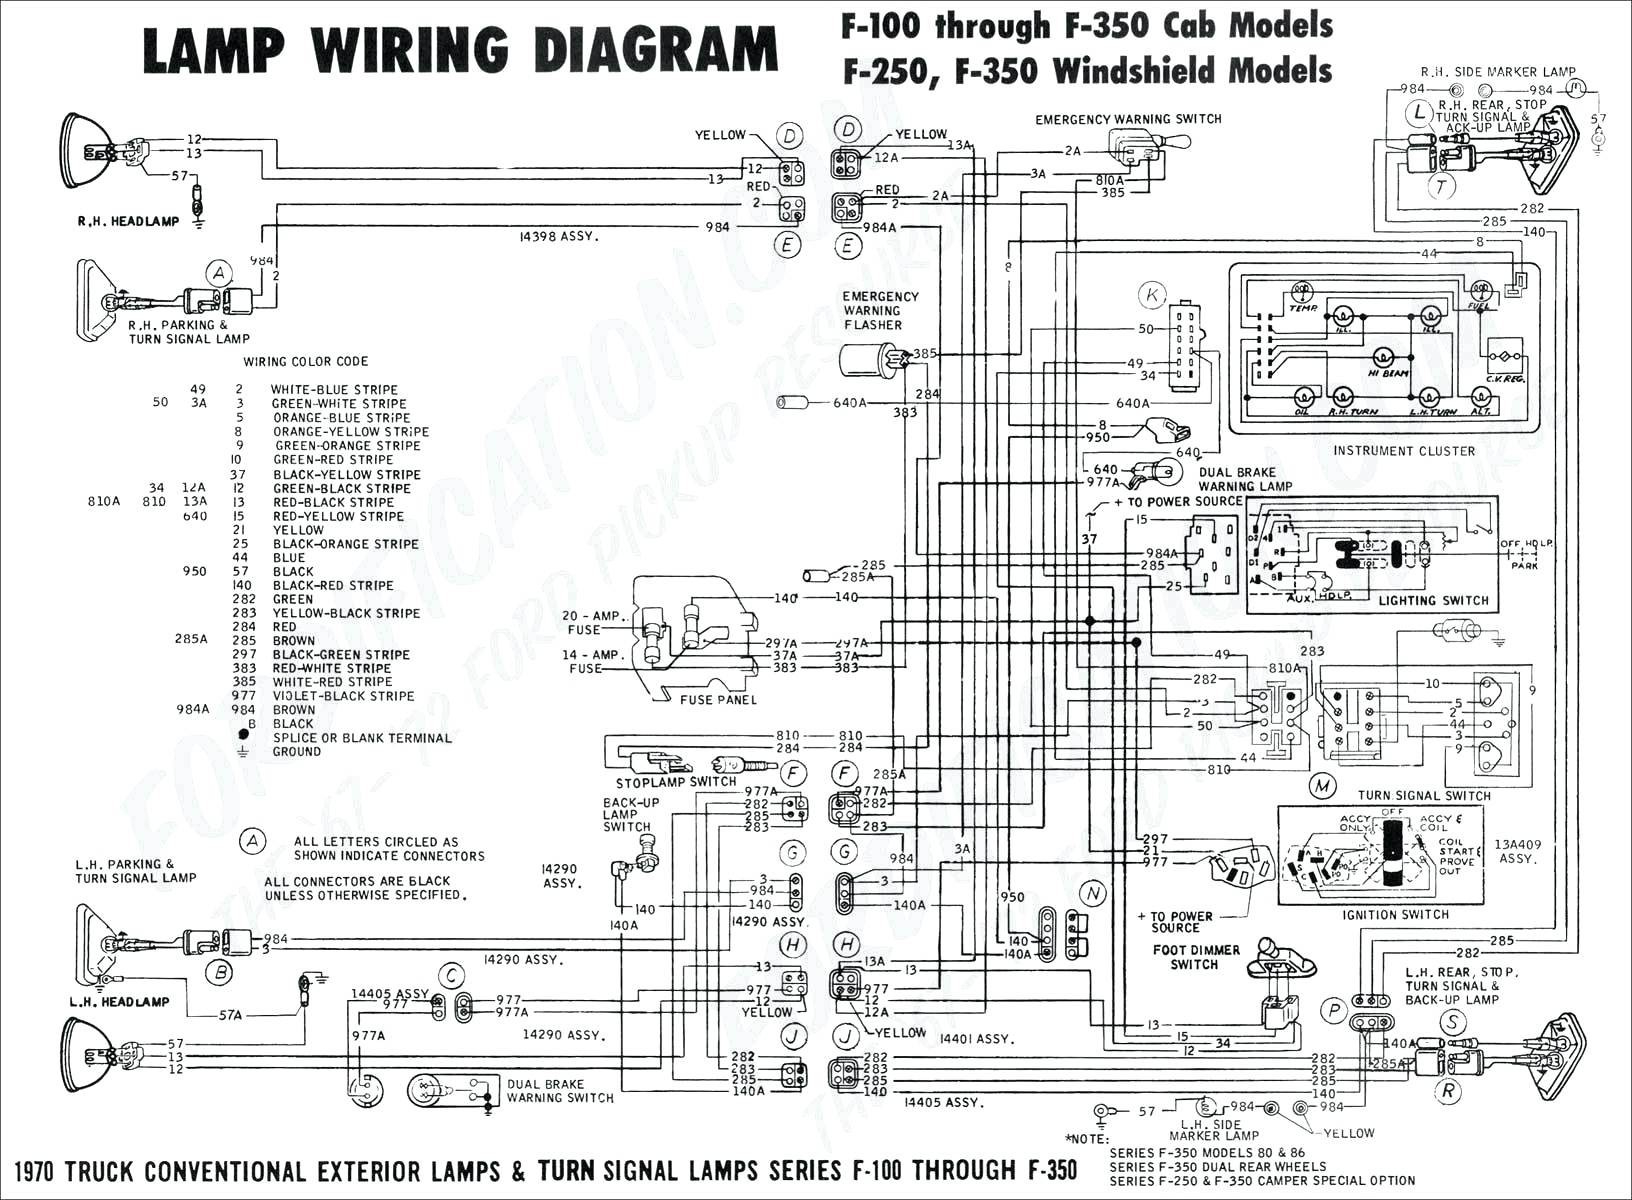 Collection Of 2009 Chevy Silverado Trailer Wiring Diagram